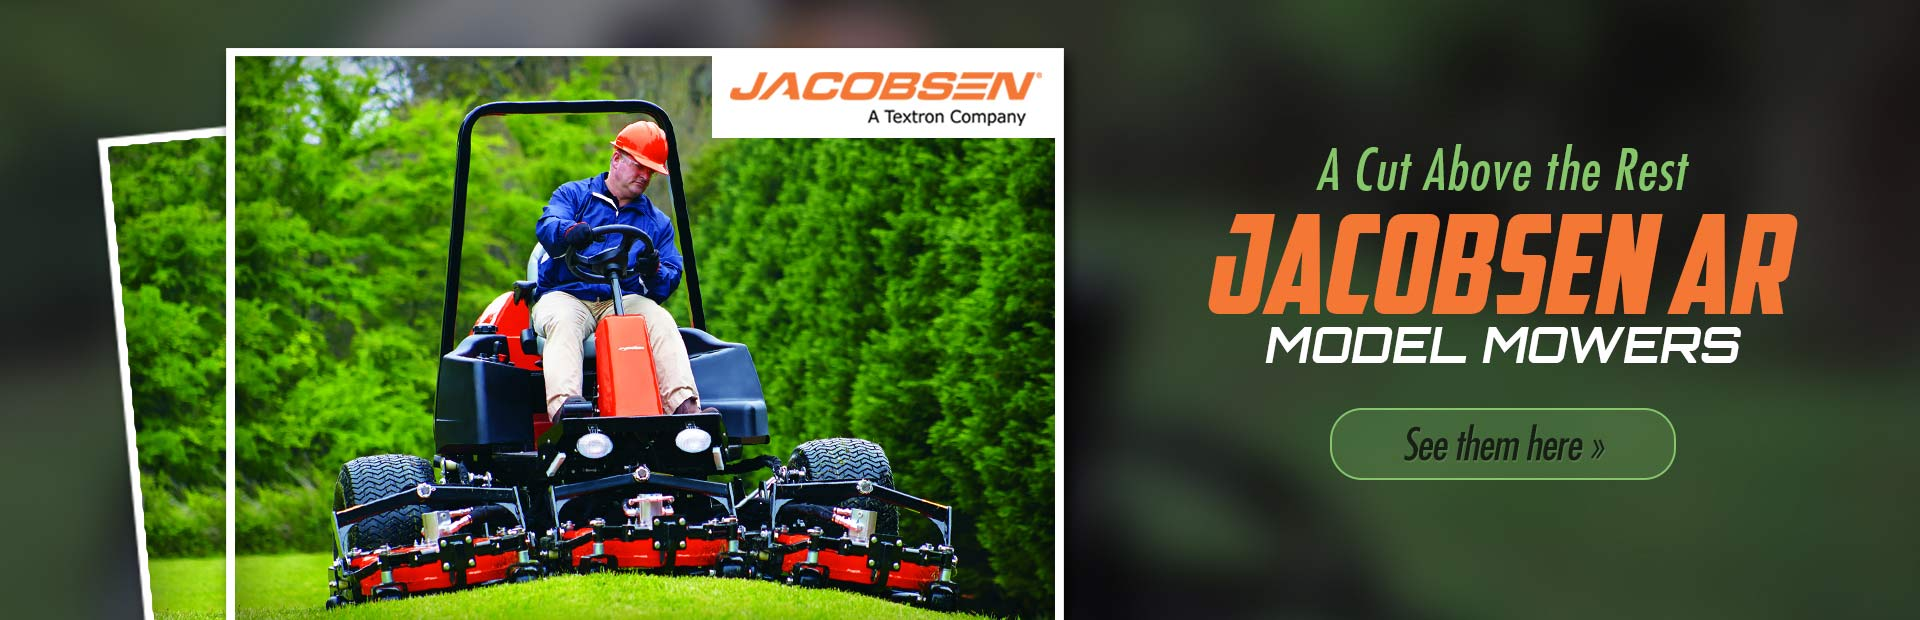 Jacobsen AR Model Mowers: Click here to view the models.